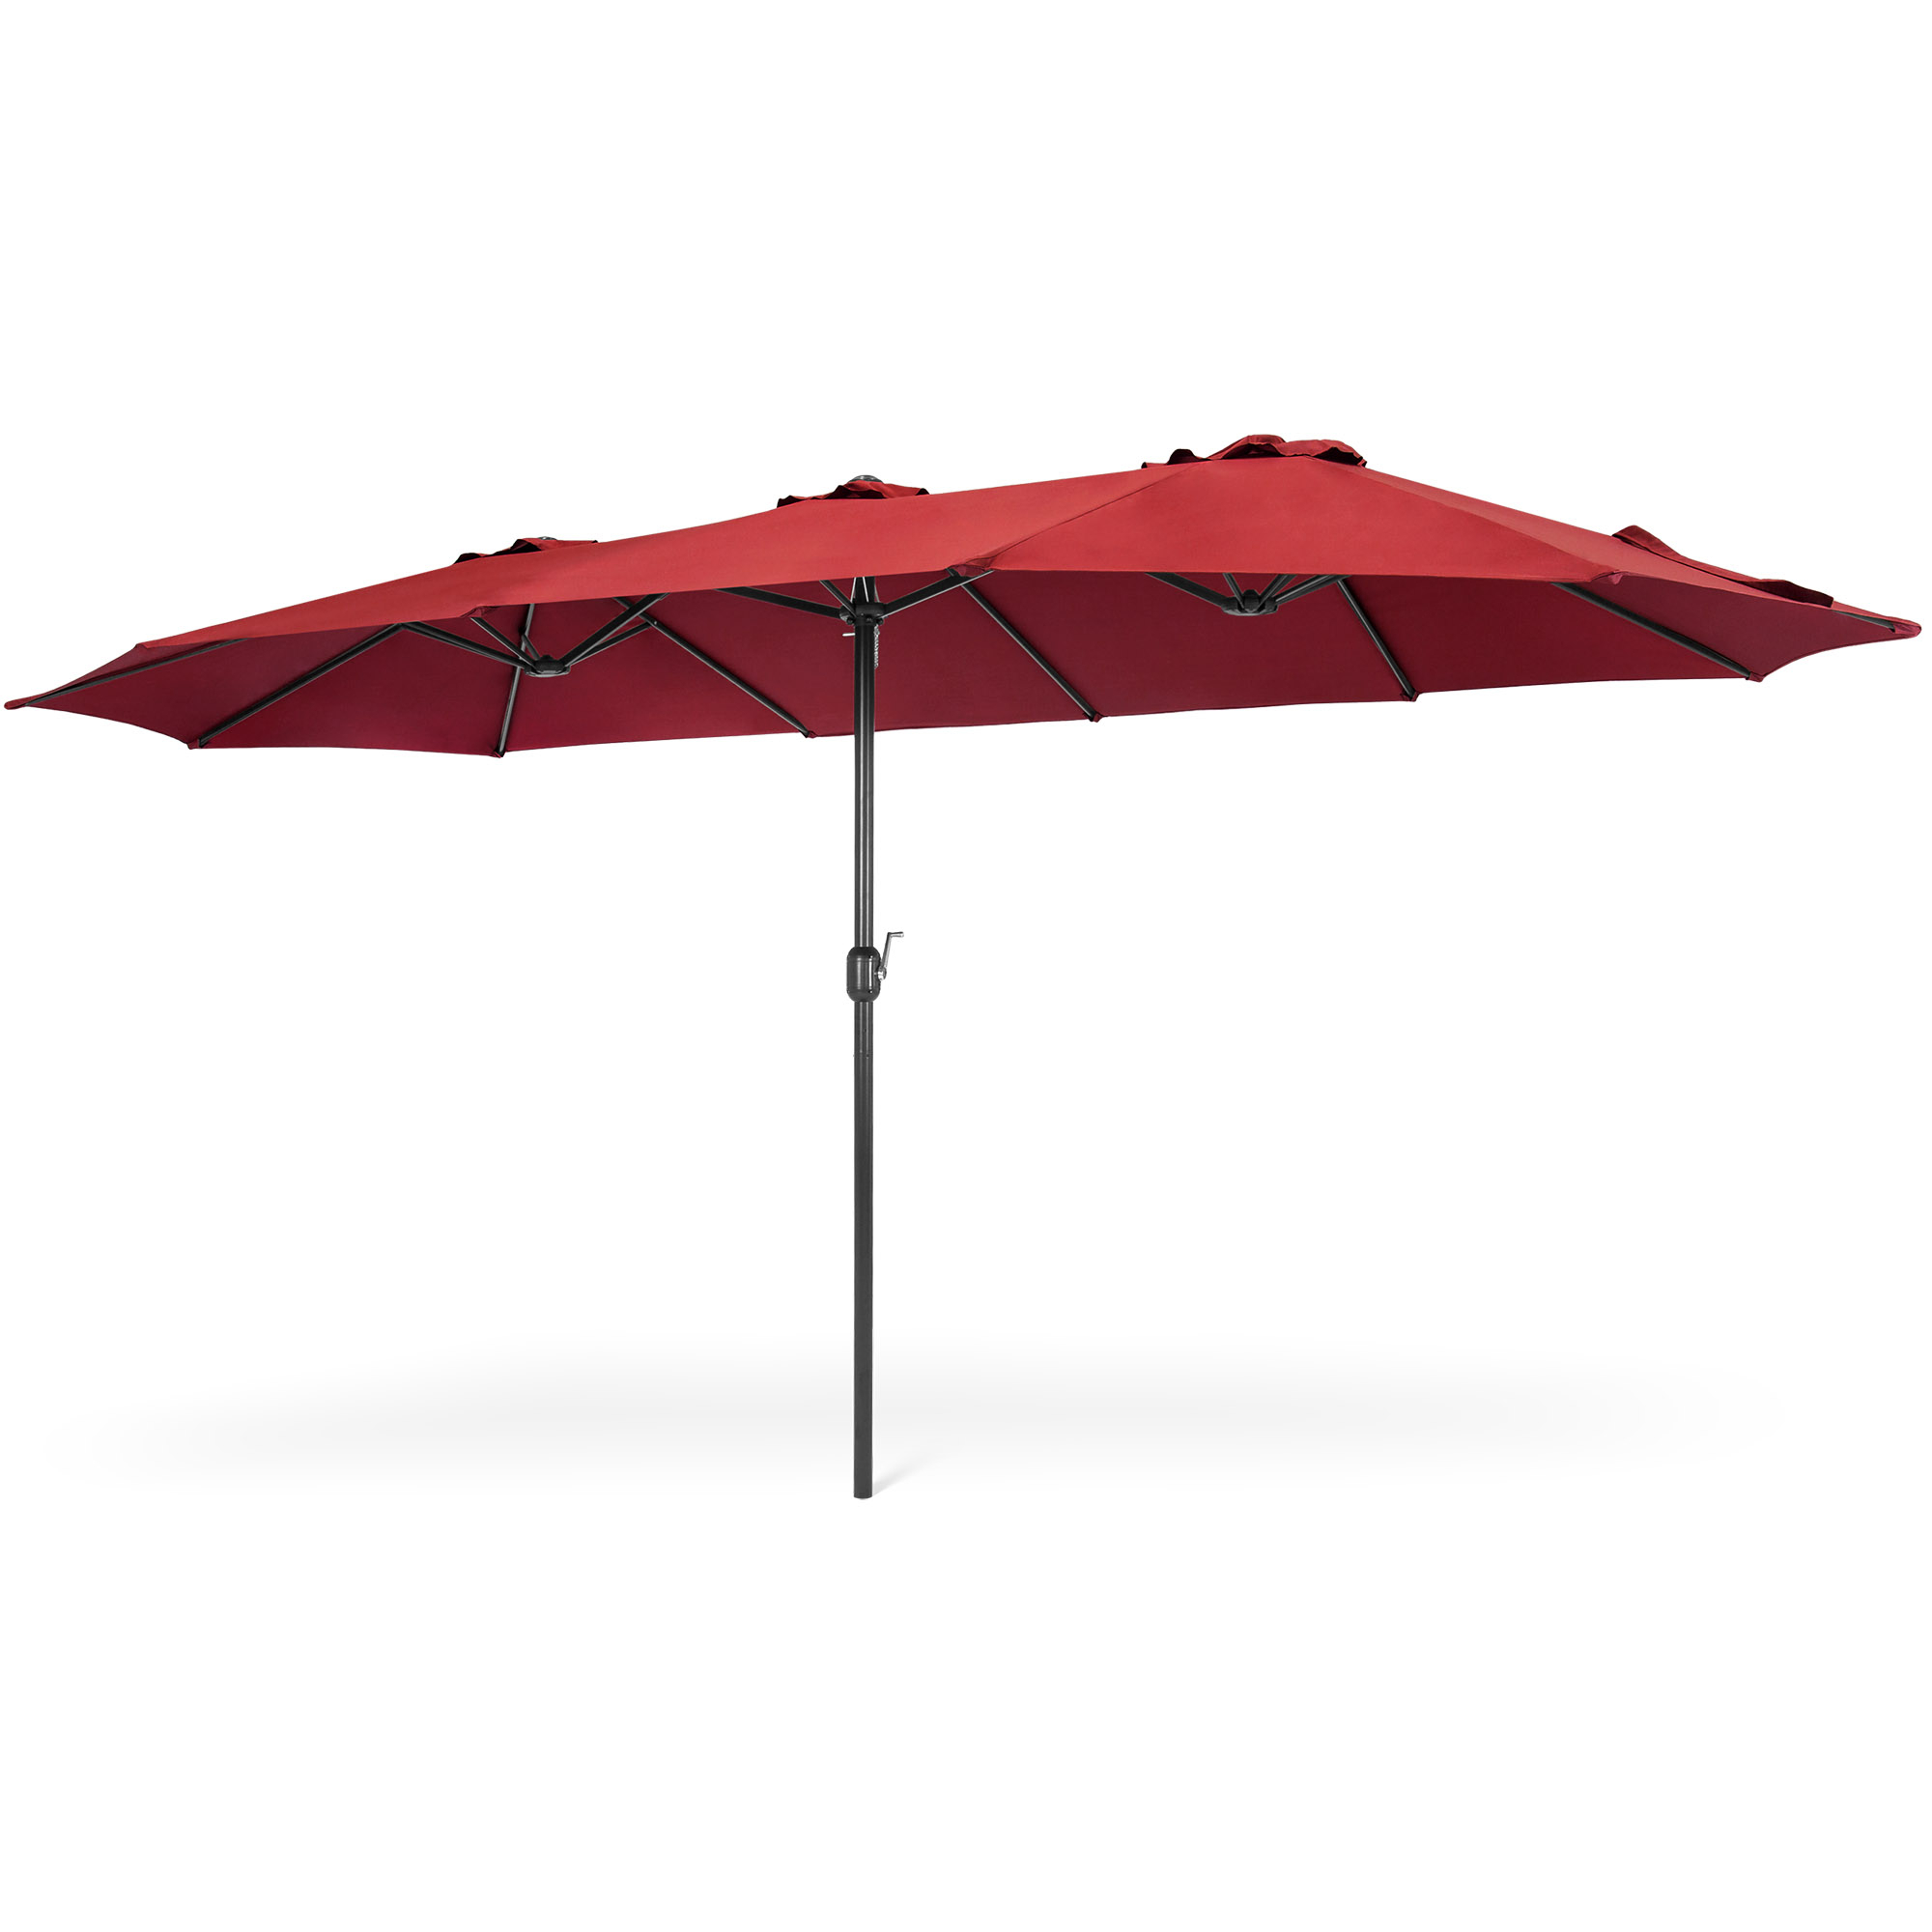 Best Choice Products 15X9Ft Large Rectangular Outdoor Aluminum Twin Patio  Market Umbrella W/ Crank, Wind Vents Intended For Fashionable Solid Rectangular Market Umbrellas (View 1 of 20)